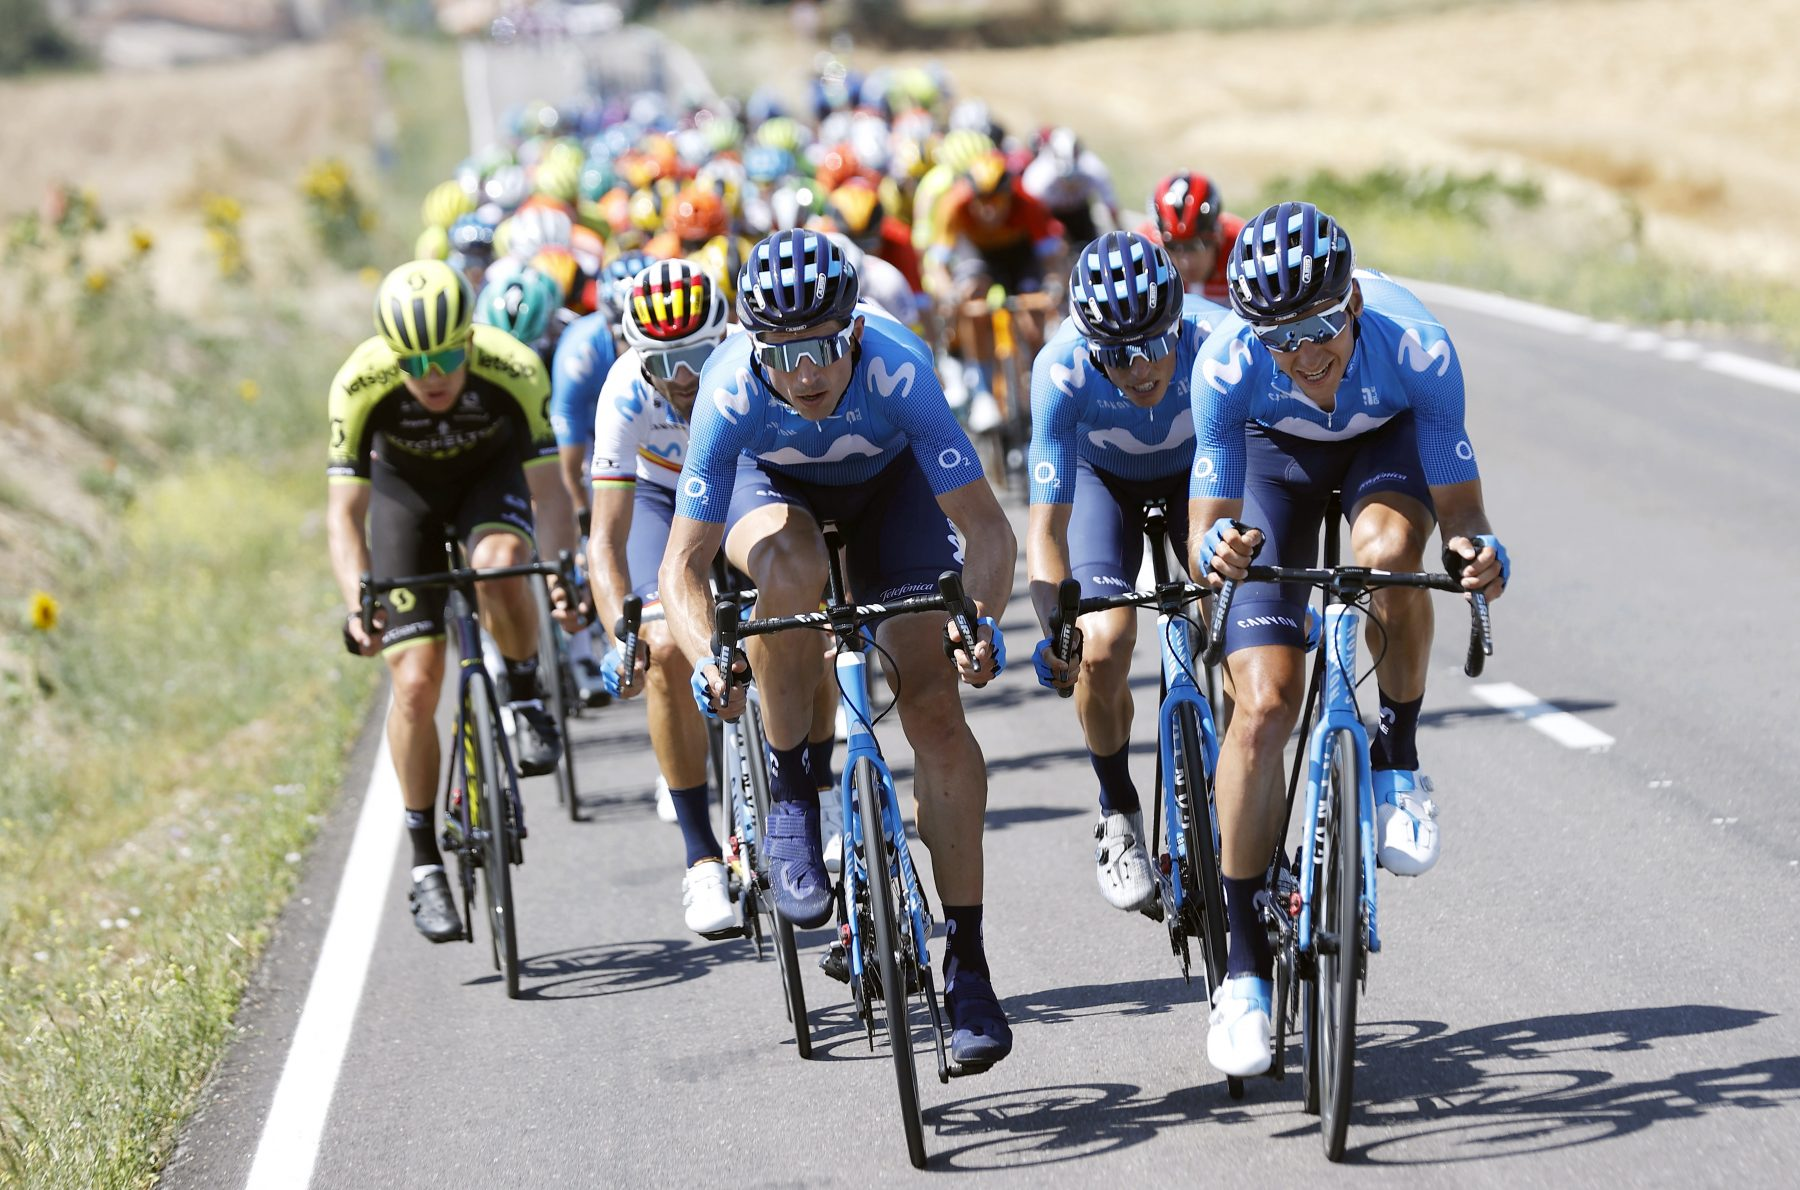 Imagen de la noticia 'Valverde 3rd as men's Movistar Team returns in Vuelta a Burgos'